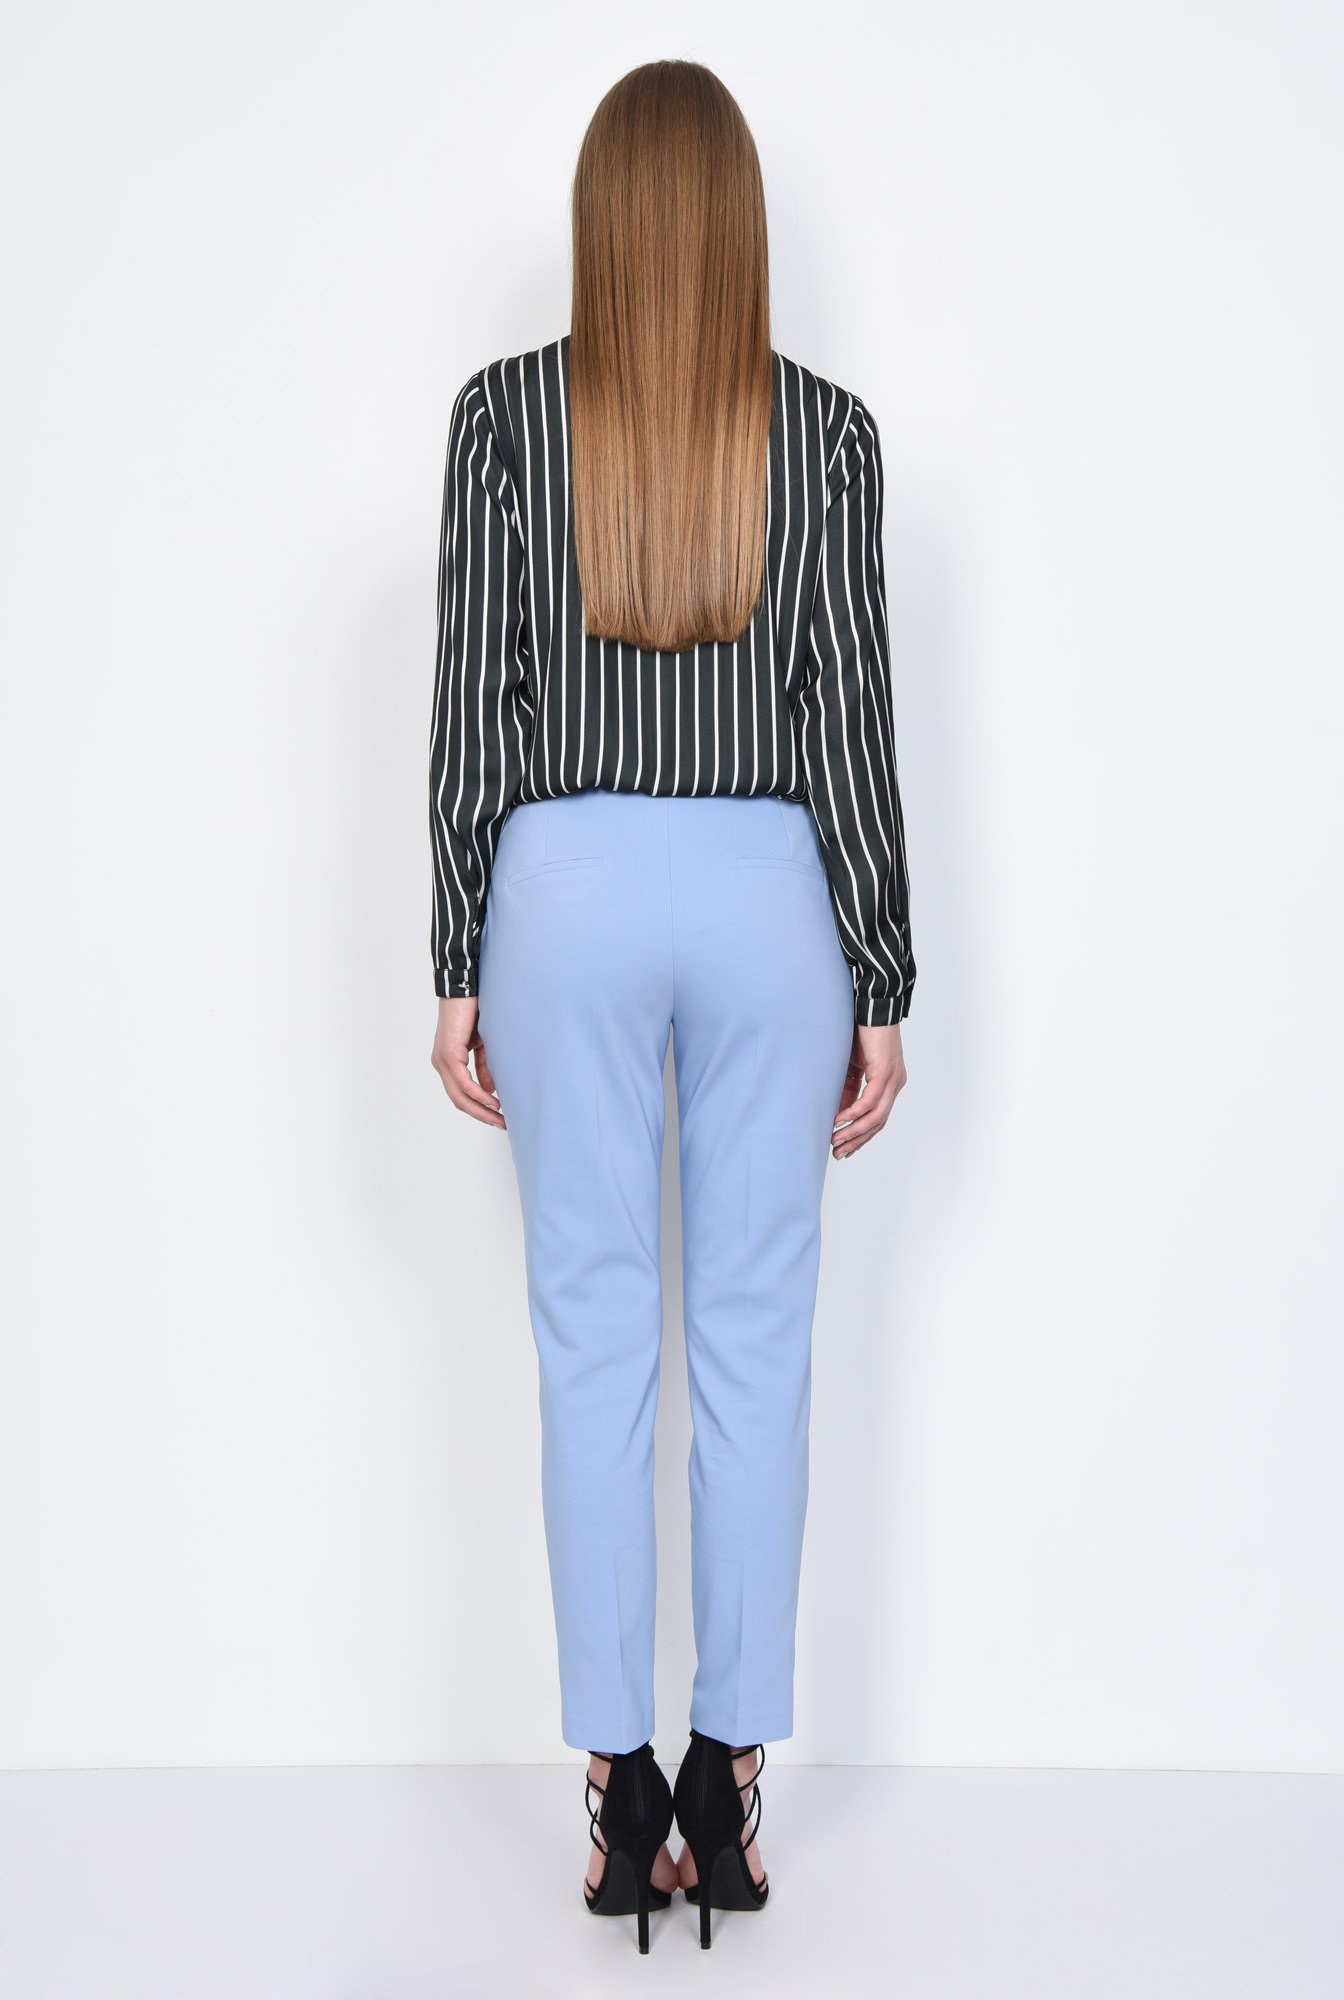 1 - PANTALON OFFICE CONIC PT 144-BLEU